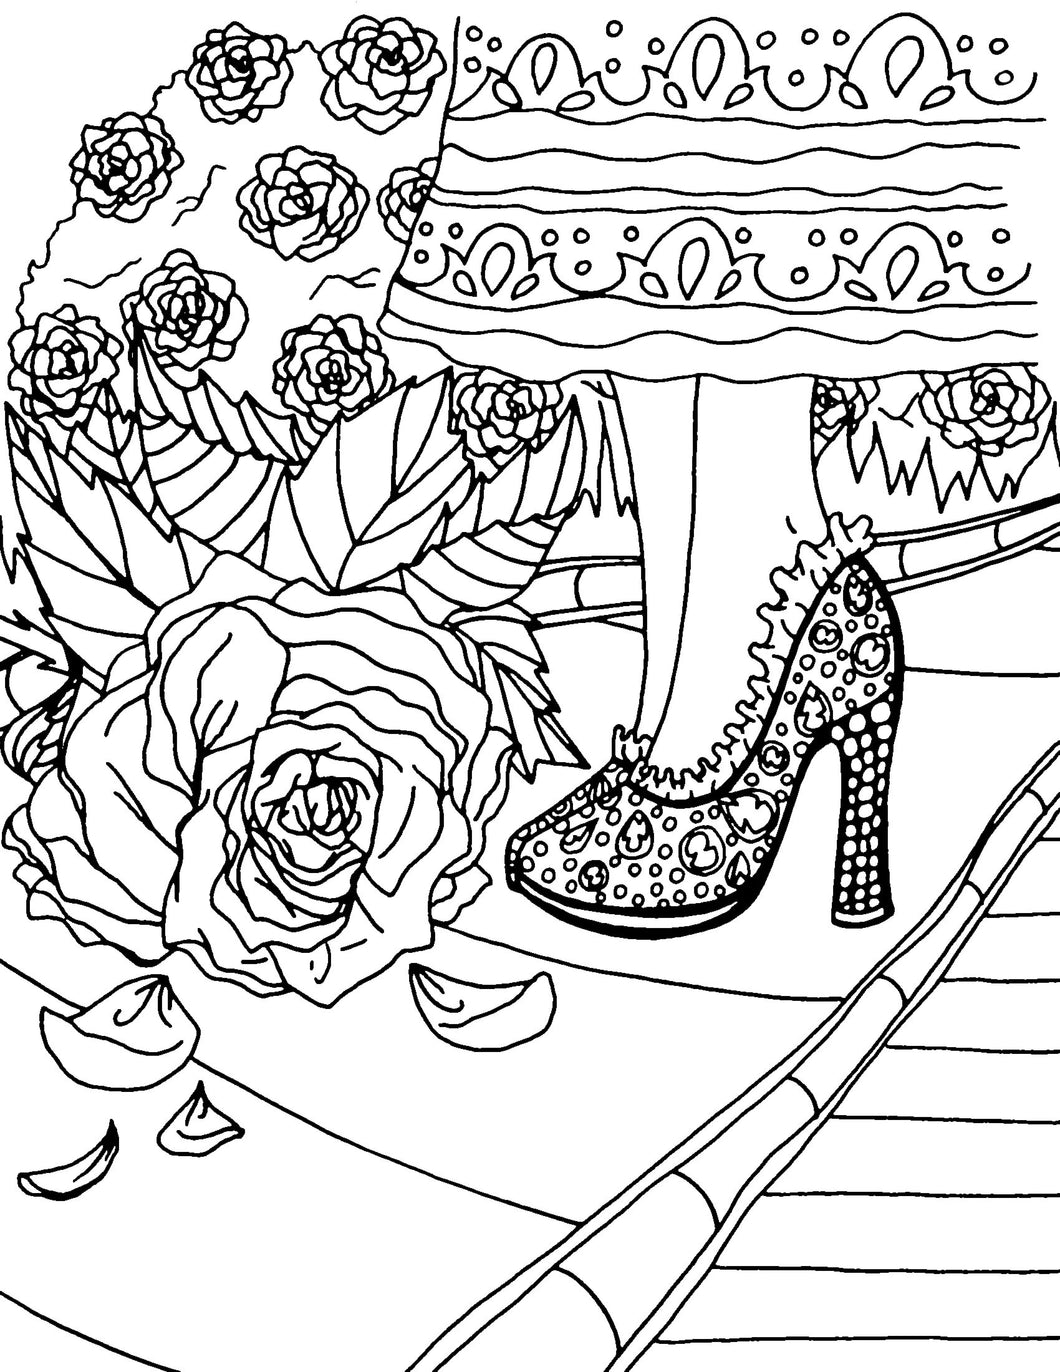 He Walks With Me Coloring Page